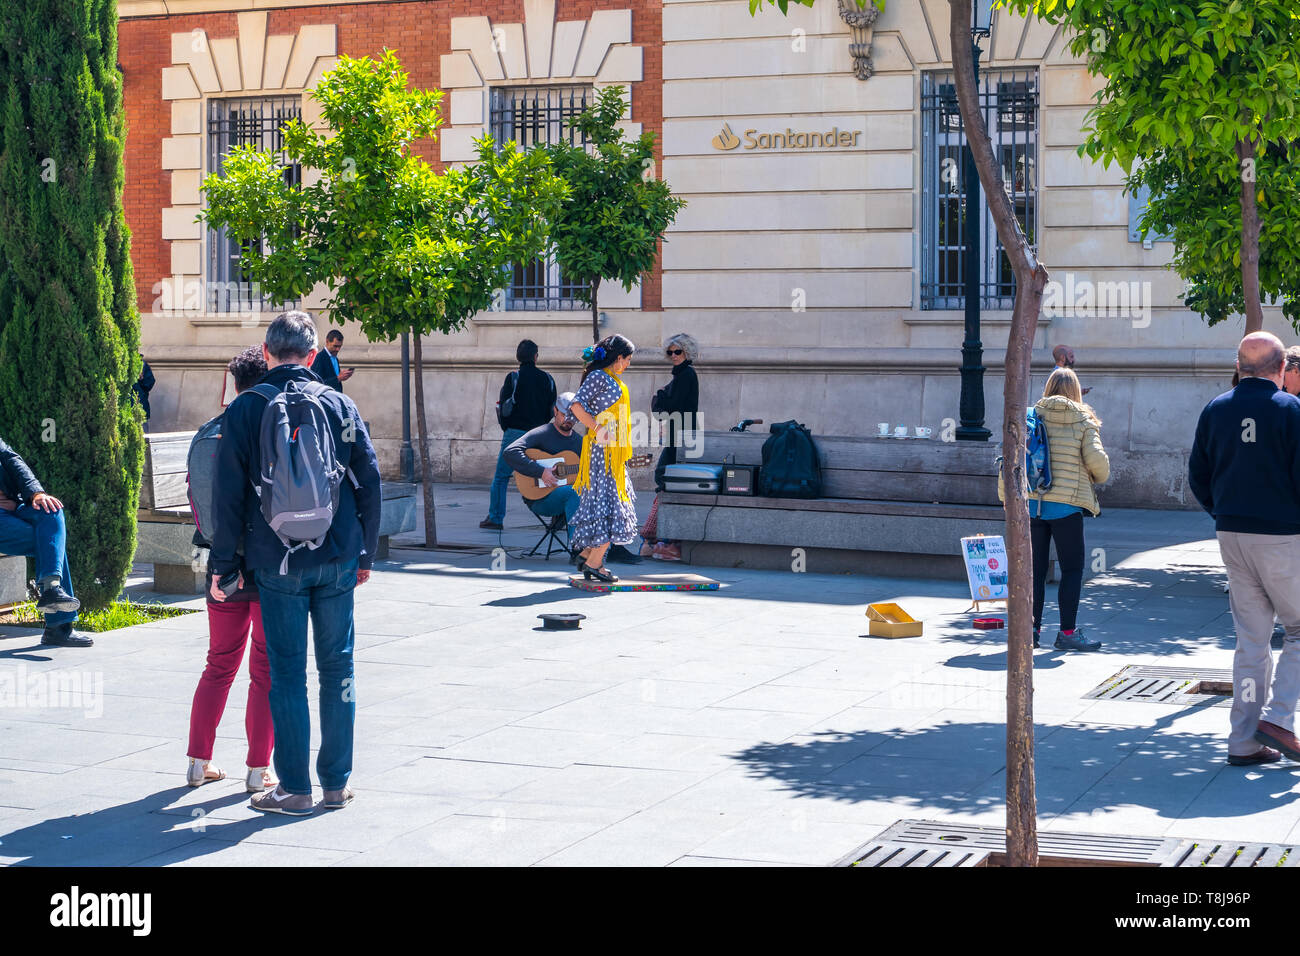 Sevilla, Spain May 8th 2019 2019. , a street band and flamenco dancer on the square of Spain, Seville. - Stock Image